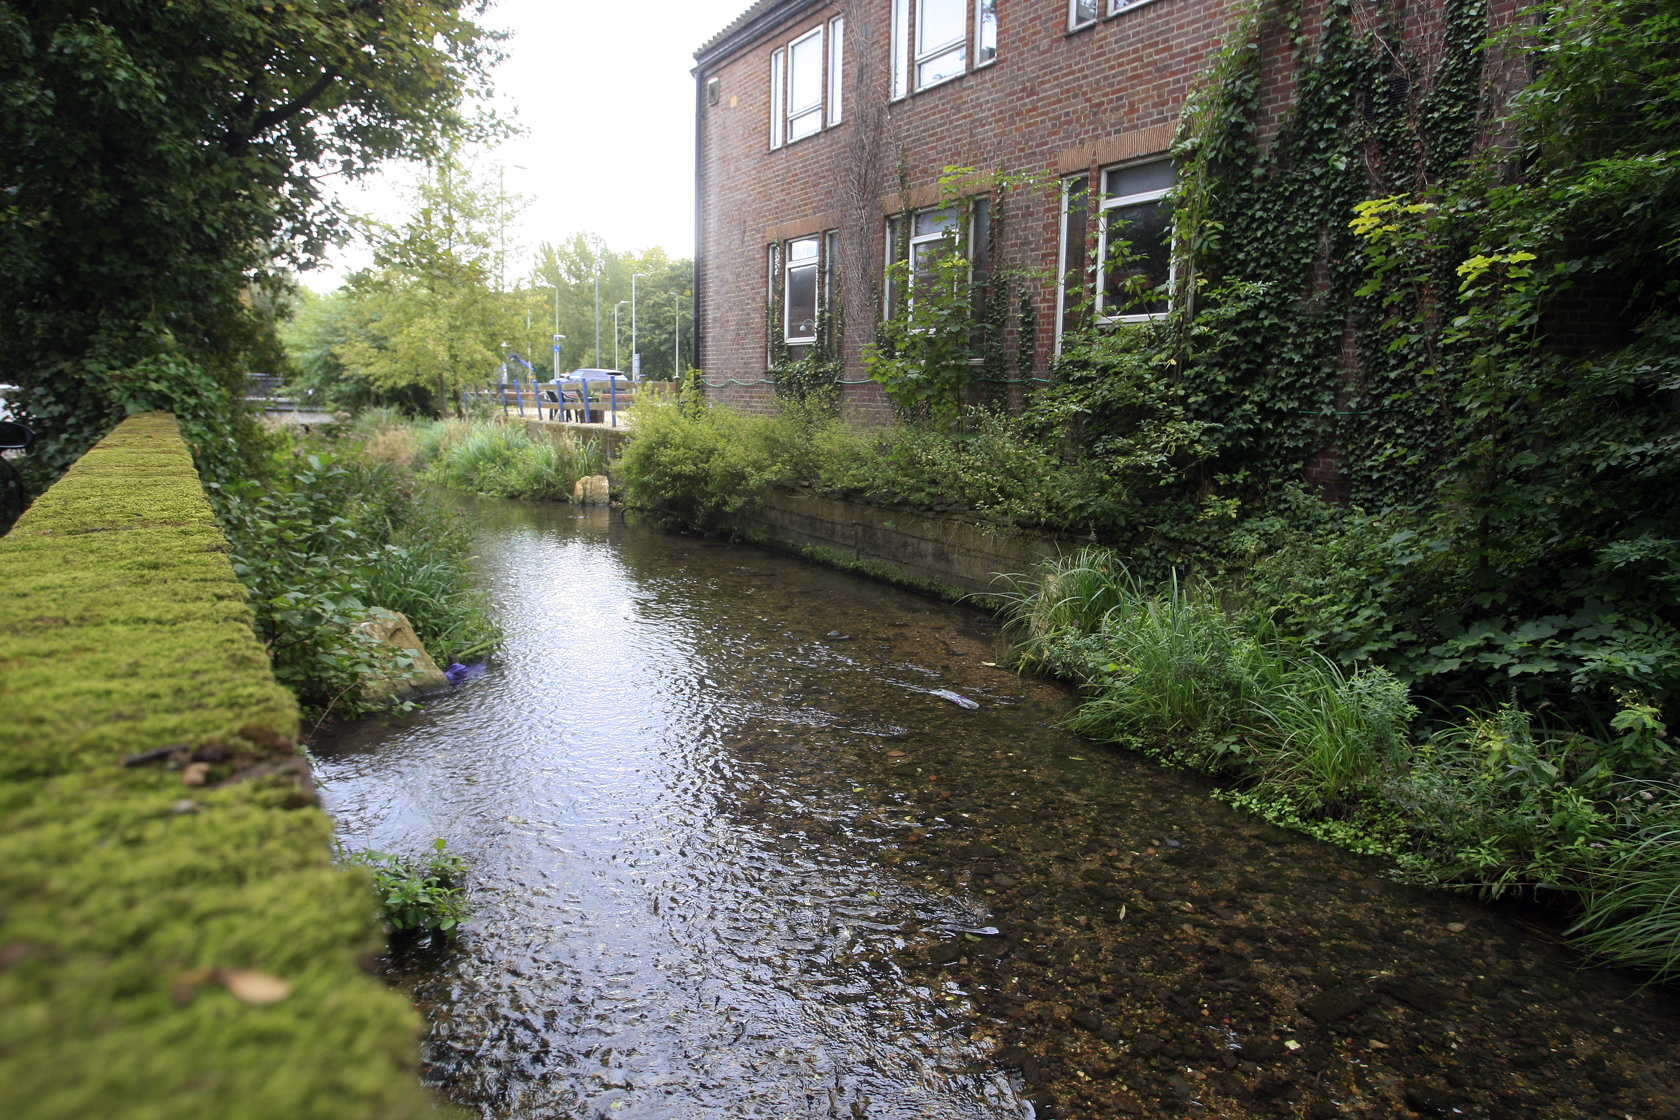 Reopening river could improve 'nuisance' area of town